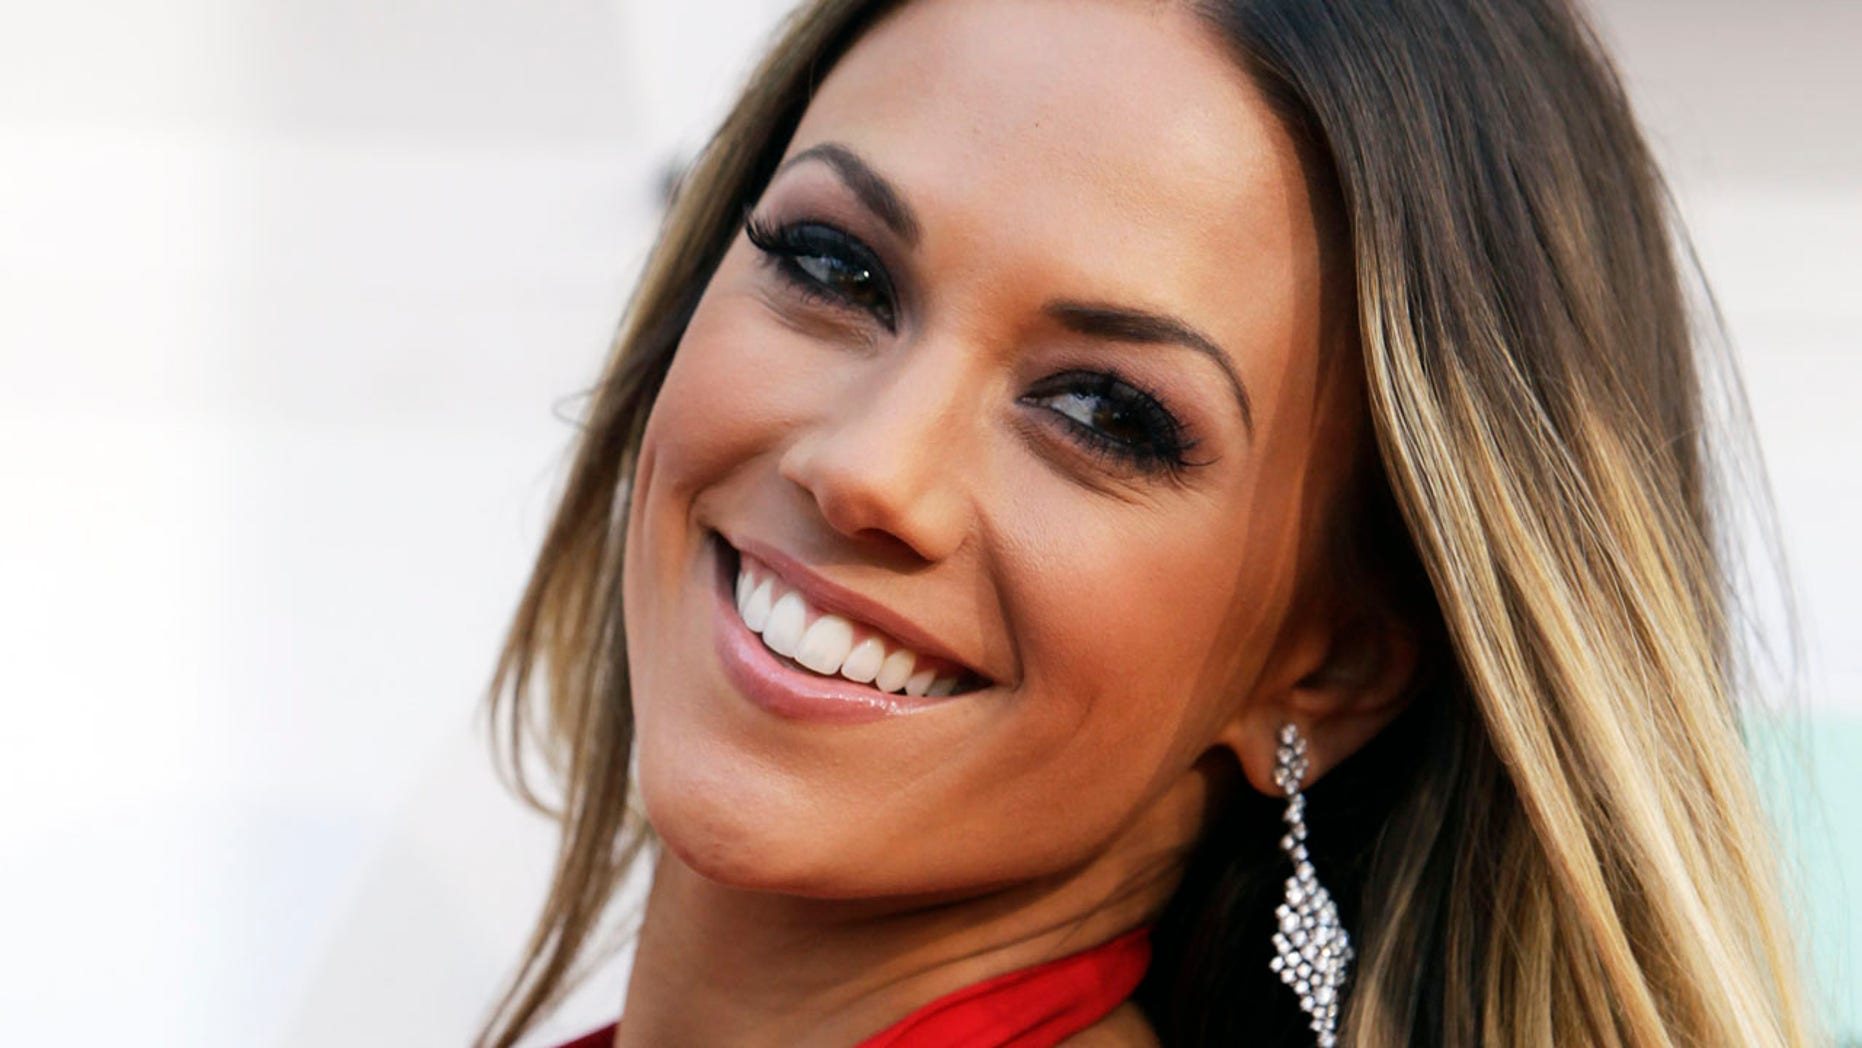 Jana Kramer announced she recently suffered a miscarriage.